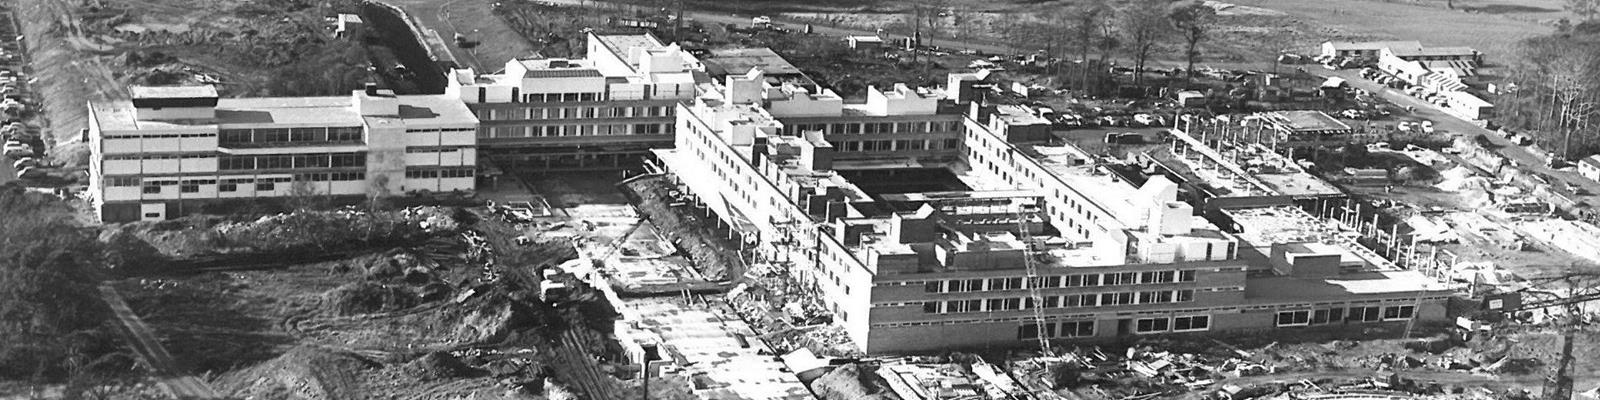 Lancaster University black and white building site